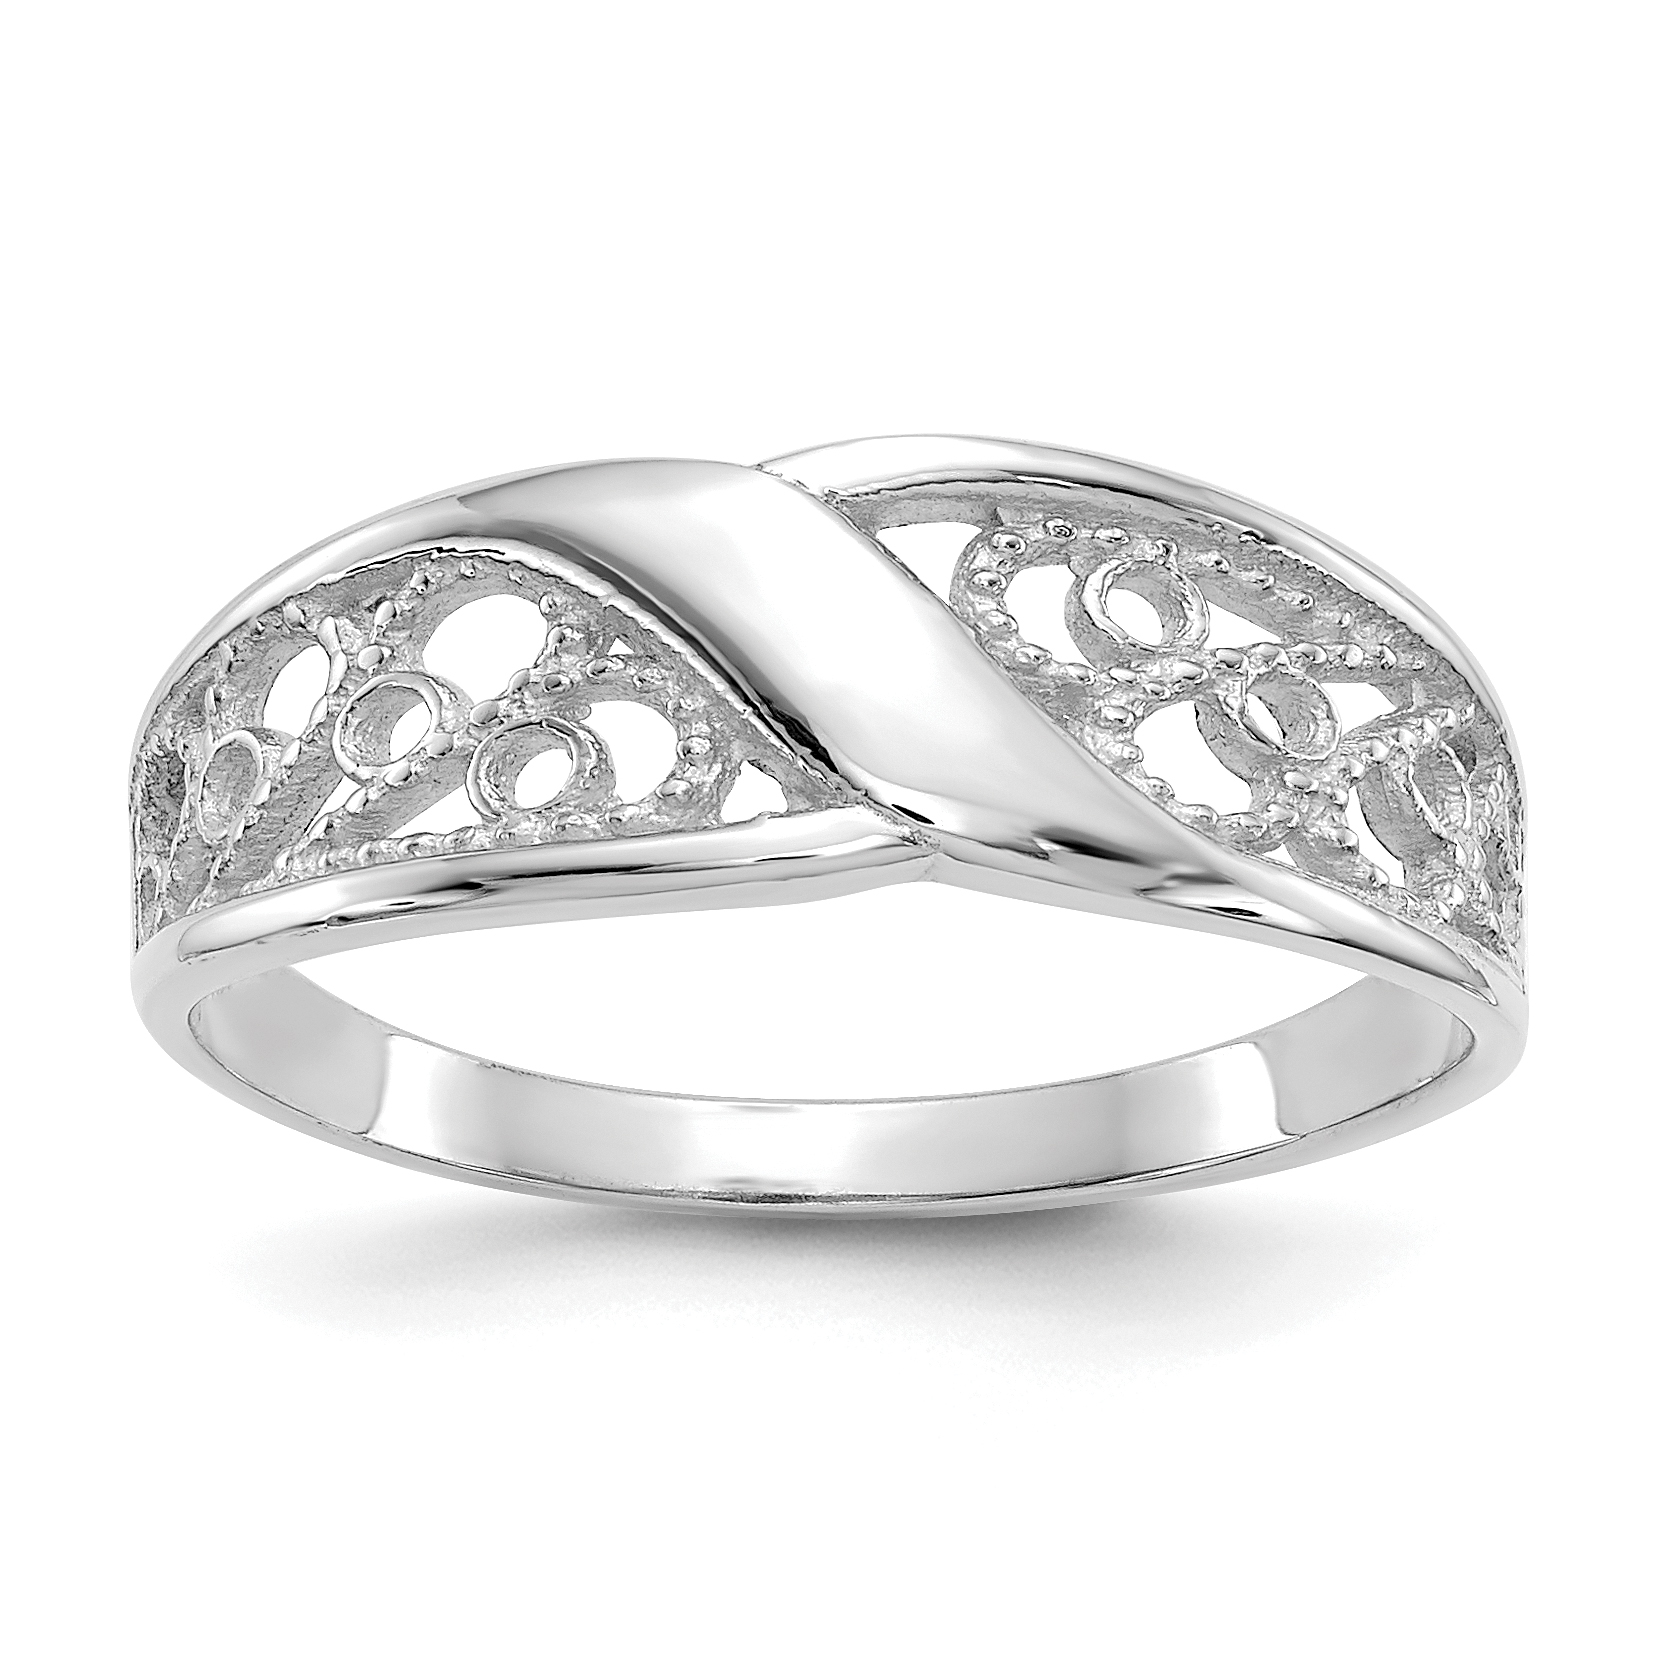 14k White Gold Filigree Band Ring Size 6.00 Fine Jewelry Gifts For Women For Her - image 2 de 2